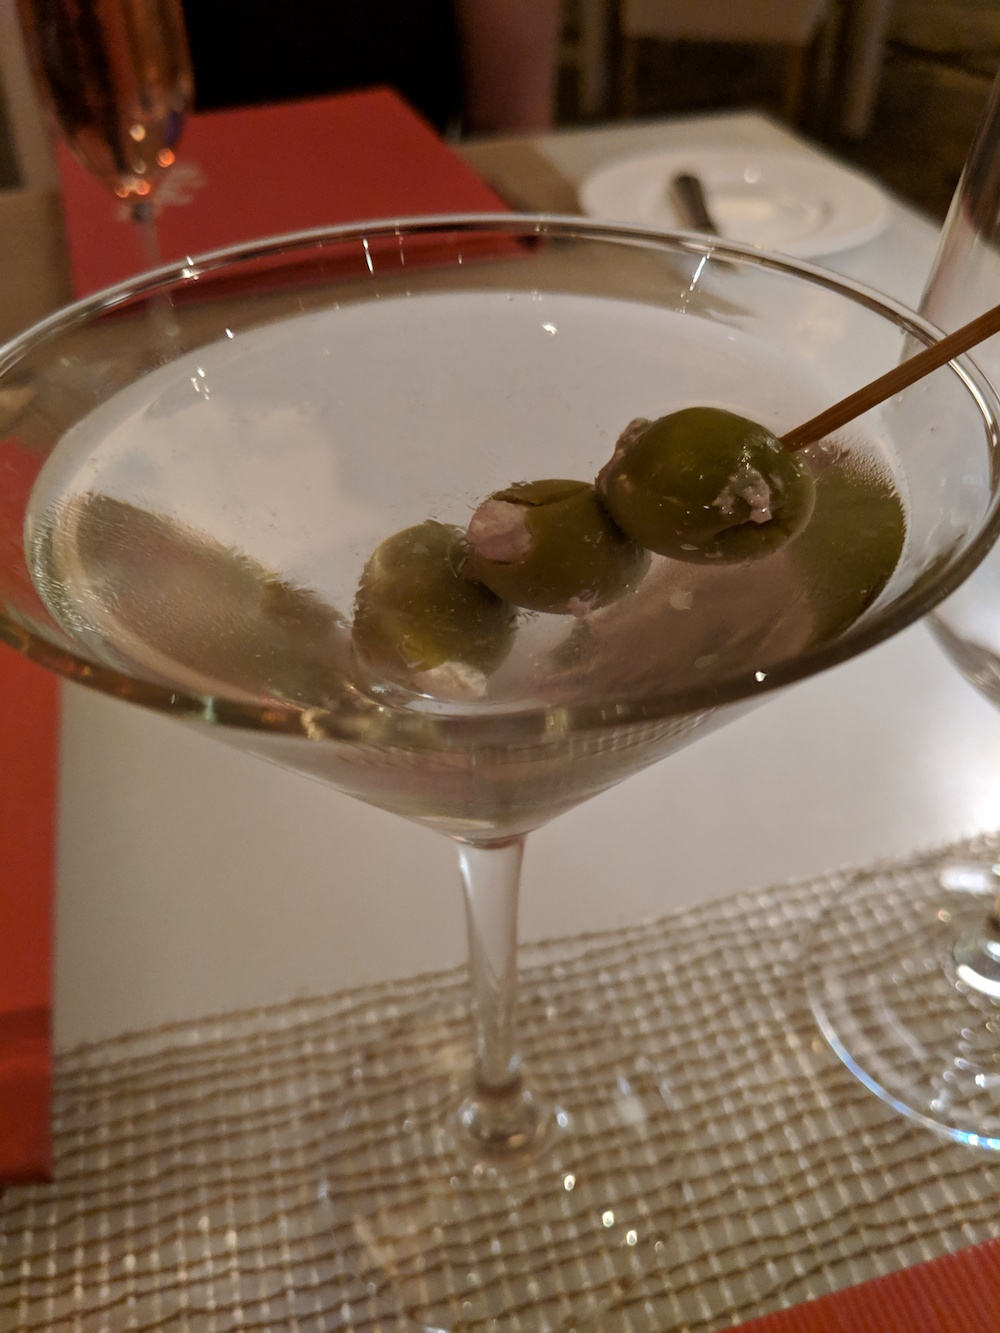 Martini at Lakeside, with Chopin and Blue Cheese Olives